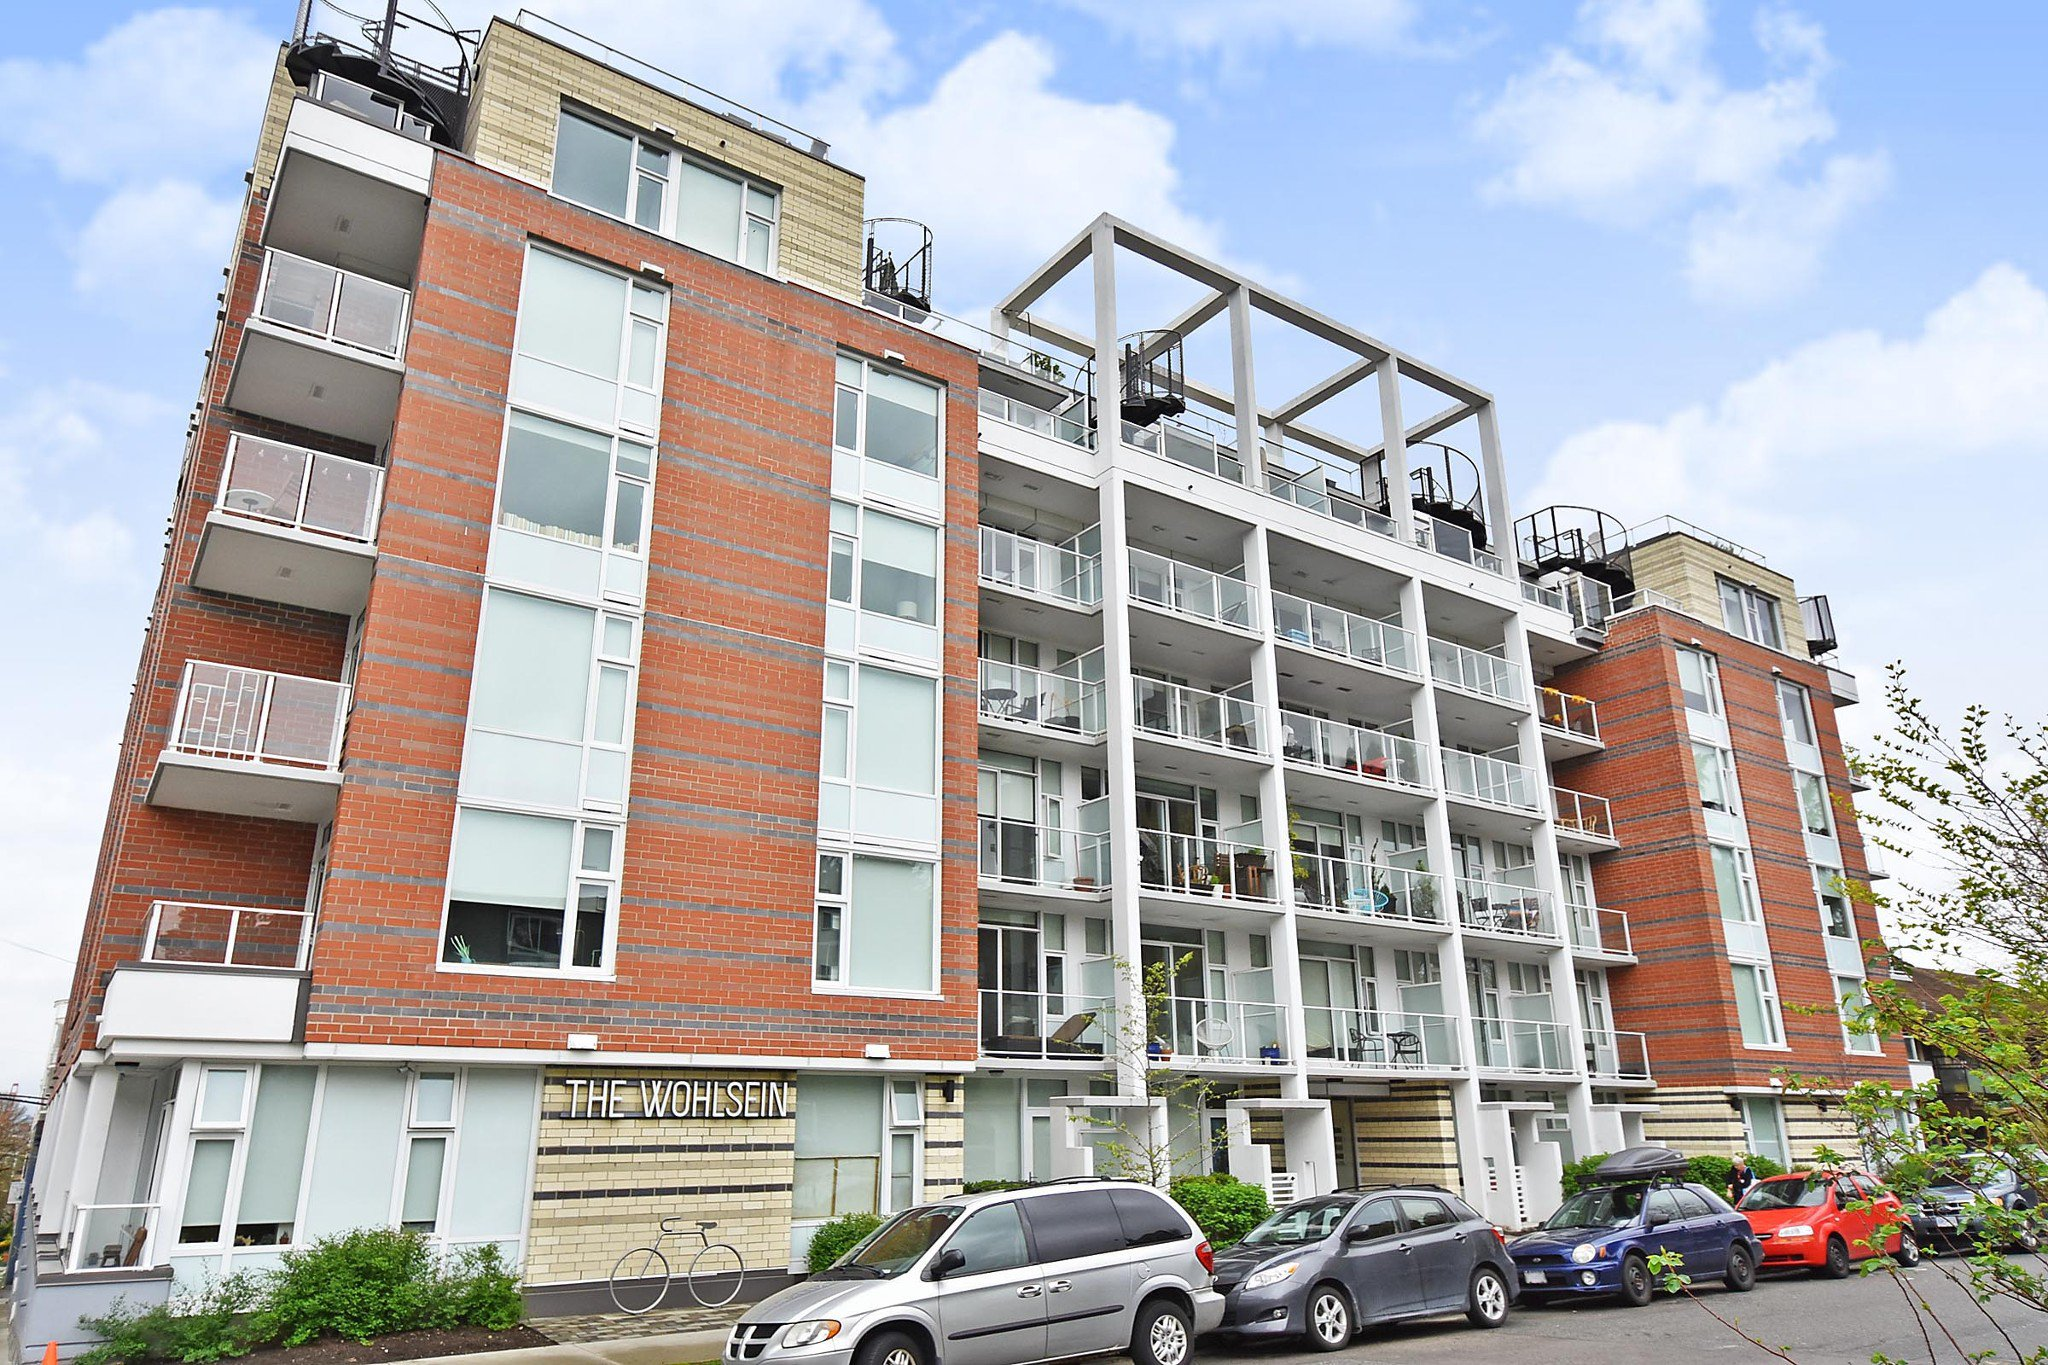 Main Photo: 612 311 E 6TH AVENUE in Vancouver: Mount Pleasant VE Condo for sale (Vancouver East)  : MLS®# R2429830